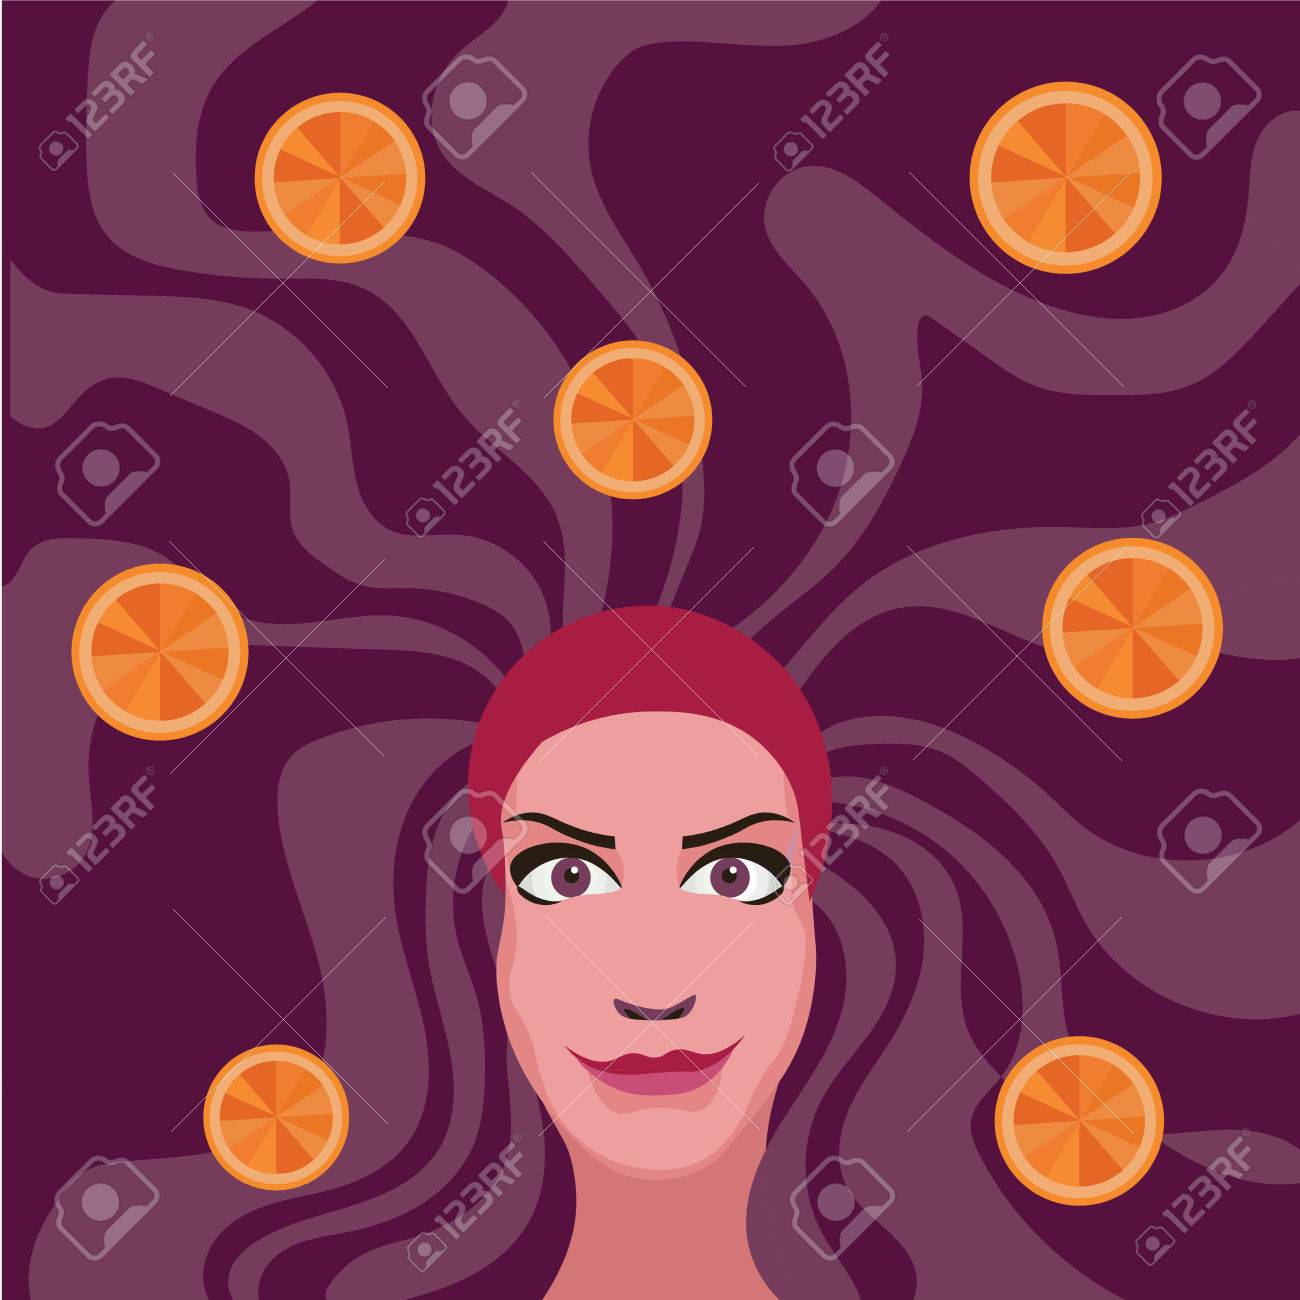 woman with purple hair with oranges - 49455268